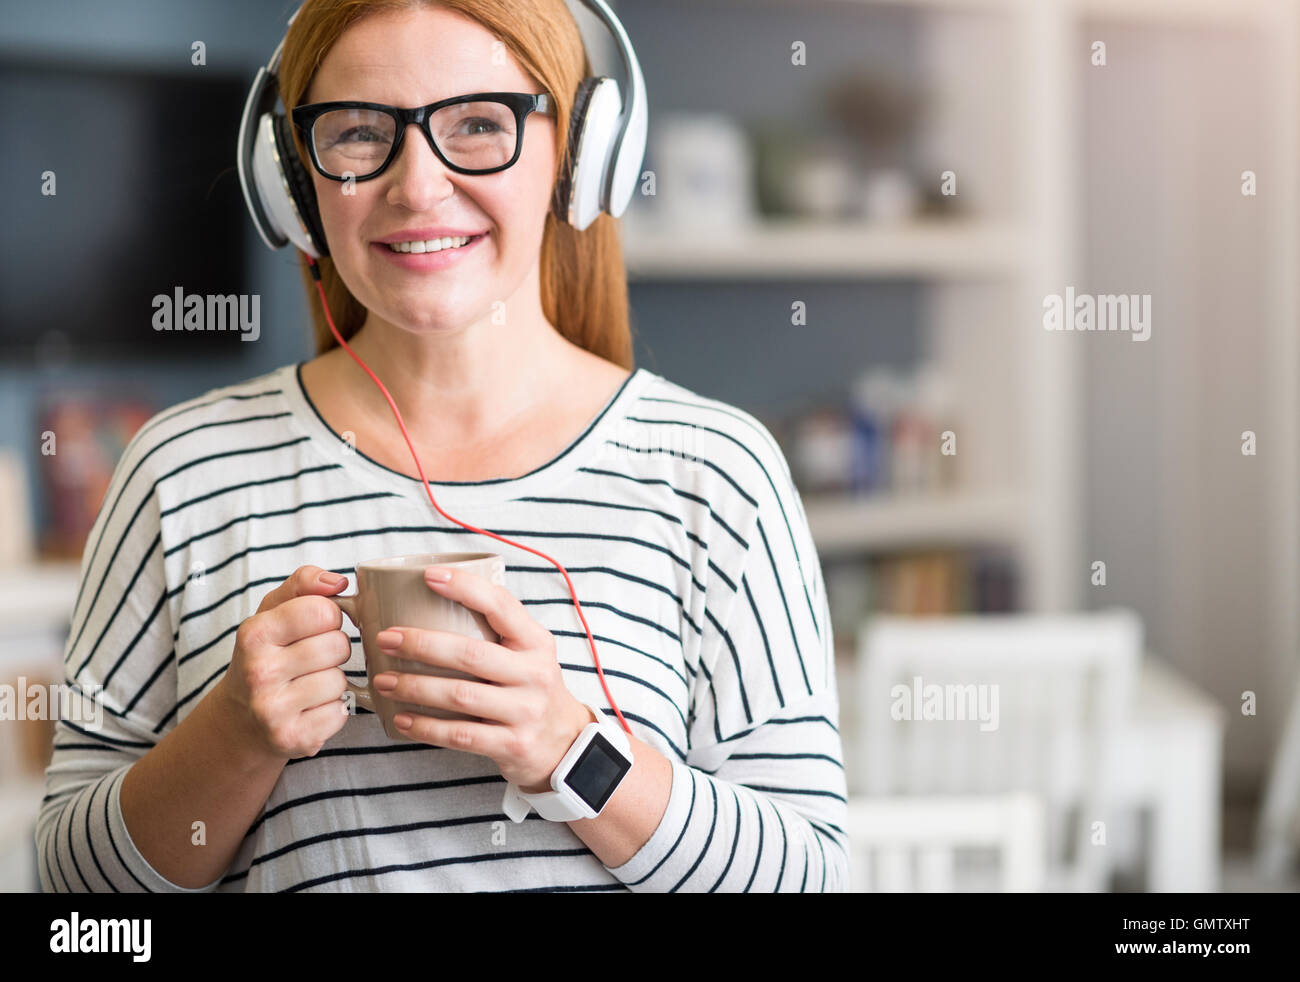 Positive senior woman listening to music - Stock Image